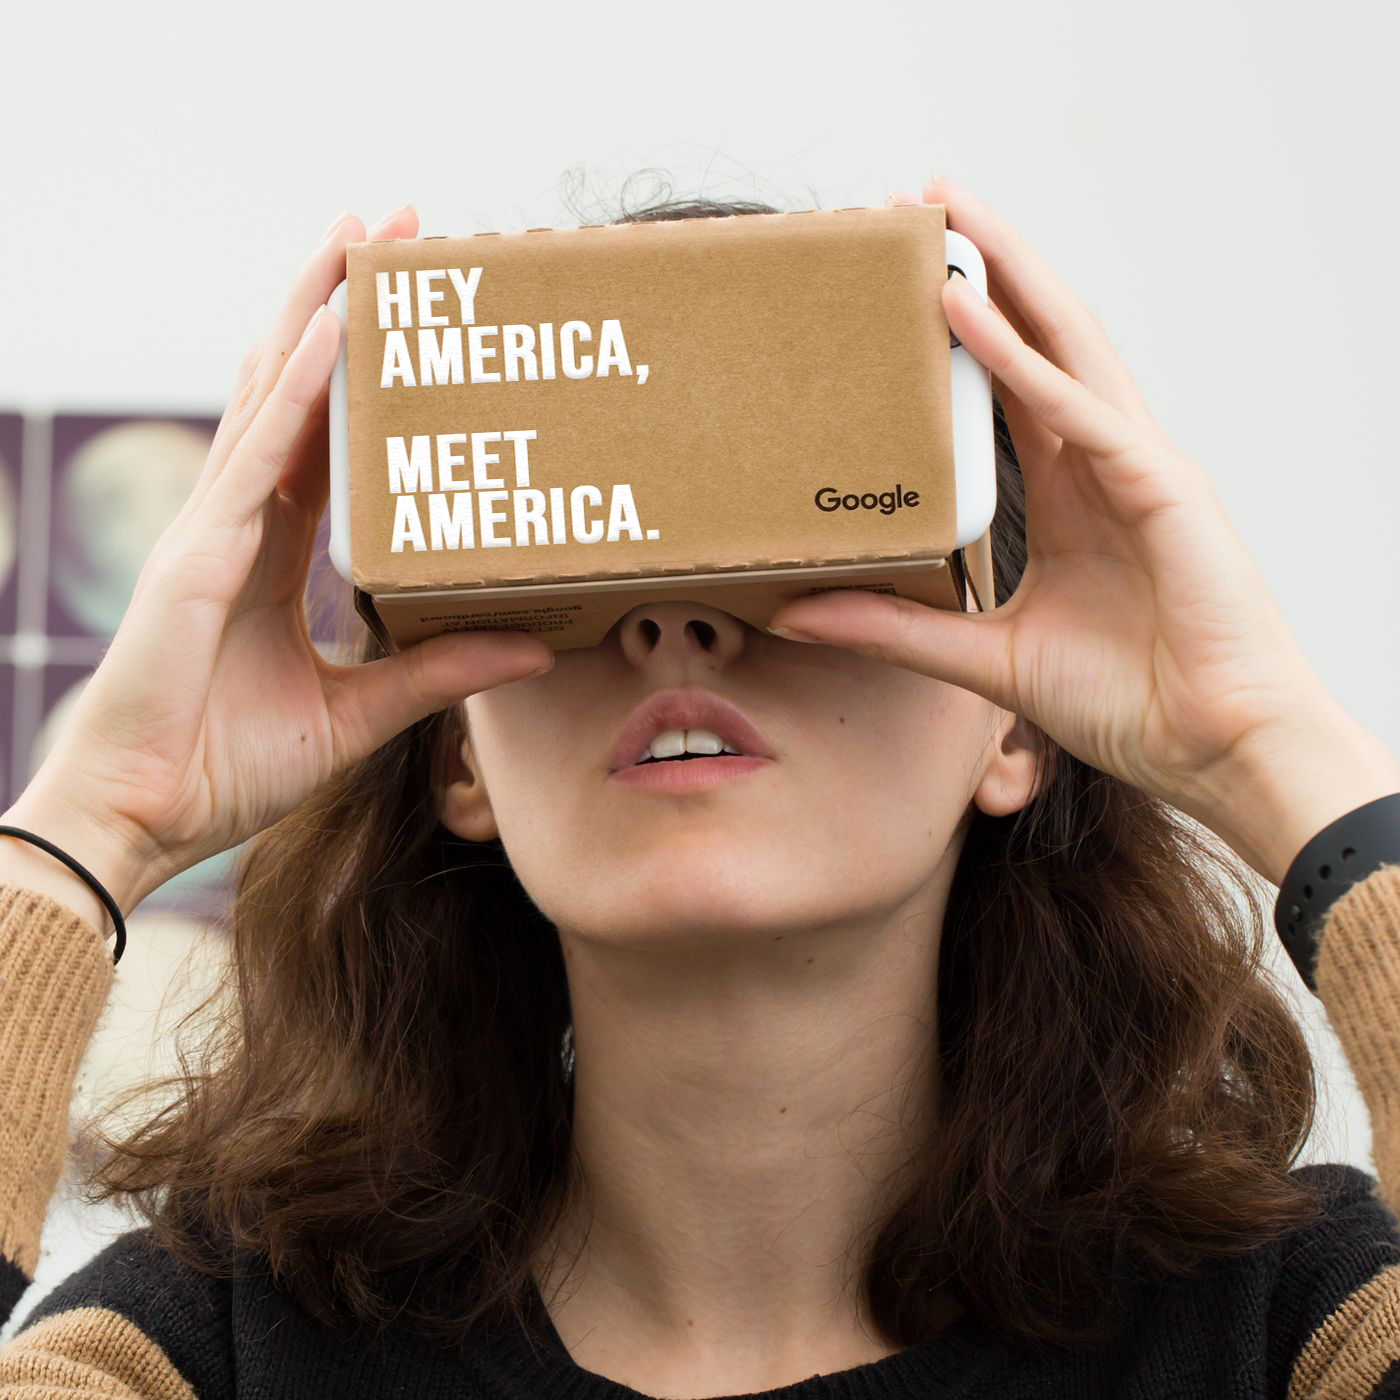 Google Cardboard On Person